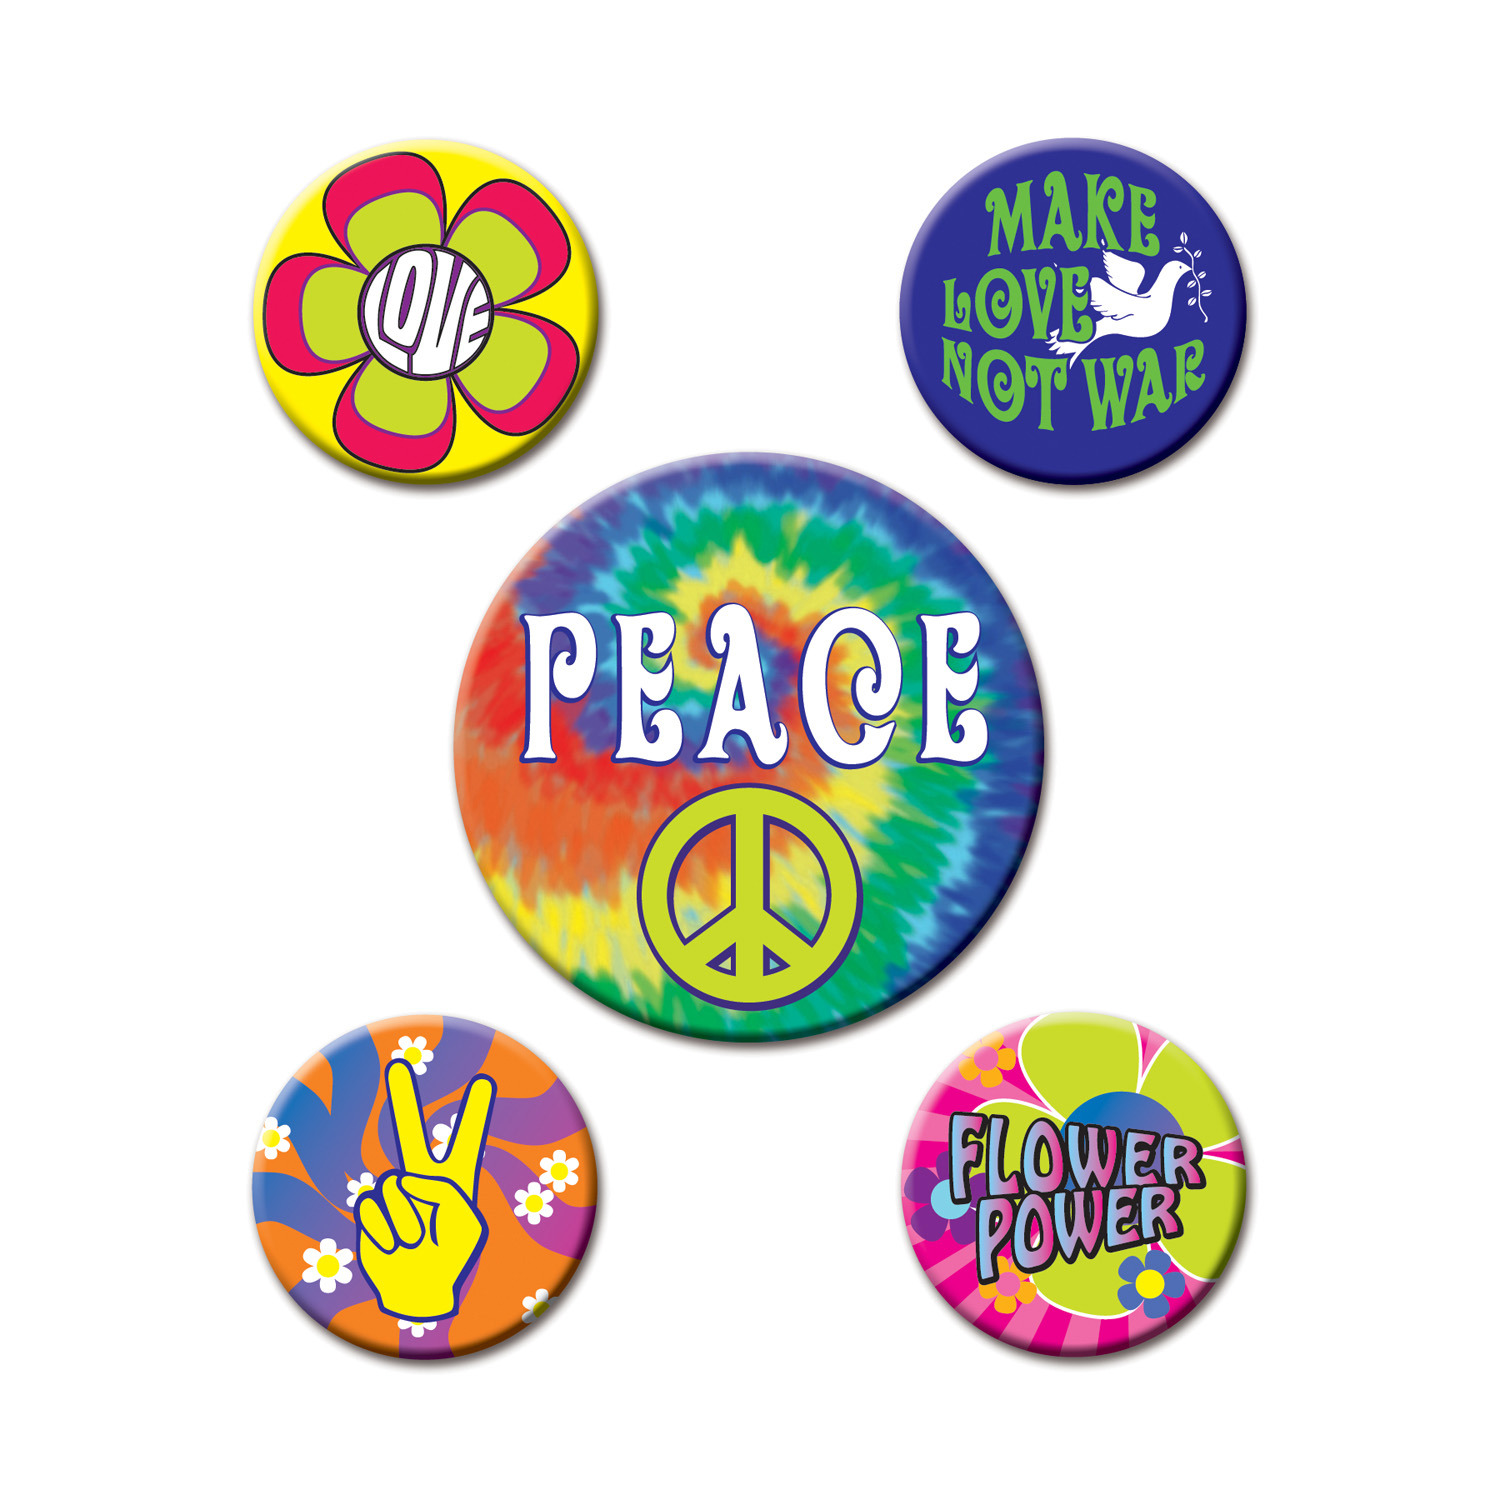 60s Party Buttons (Pack of 60) 60s Party Buttons, party favors, 60s, 1960s, new years eve, halloween, wholesale, inexpensive, bulk